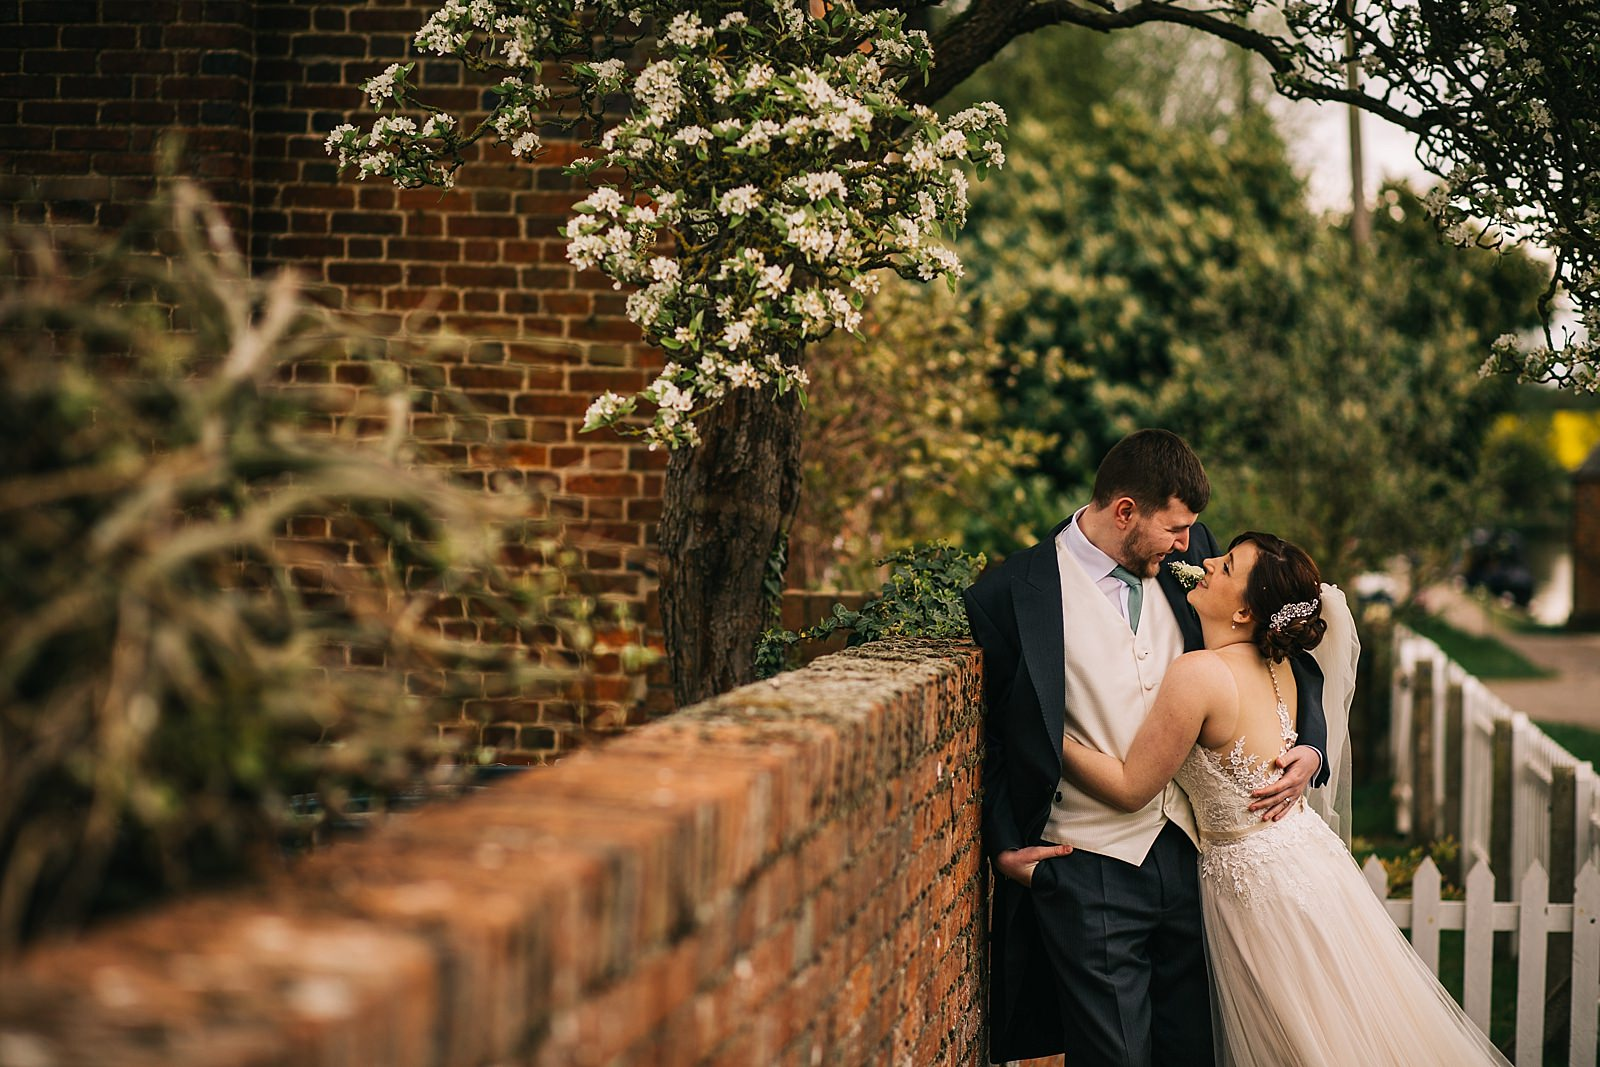 grace-josh-wedding-blisworth-the walnut-tree-inn-361